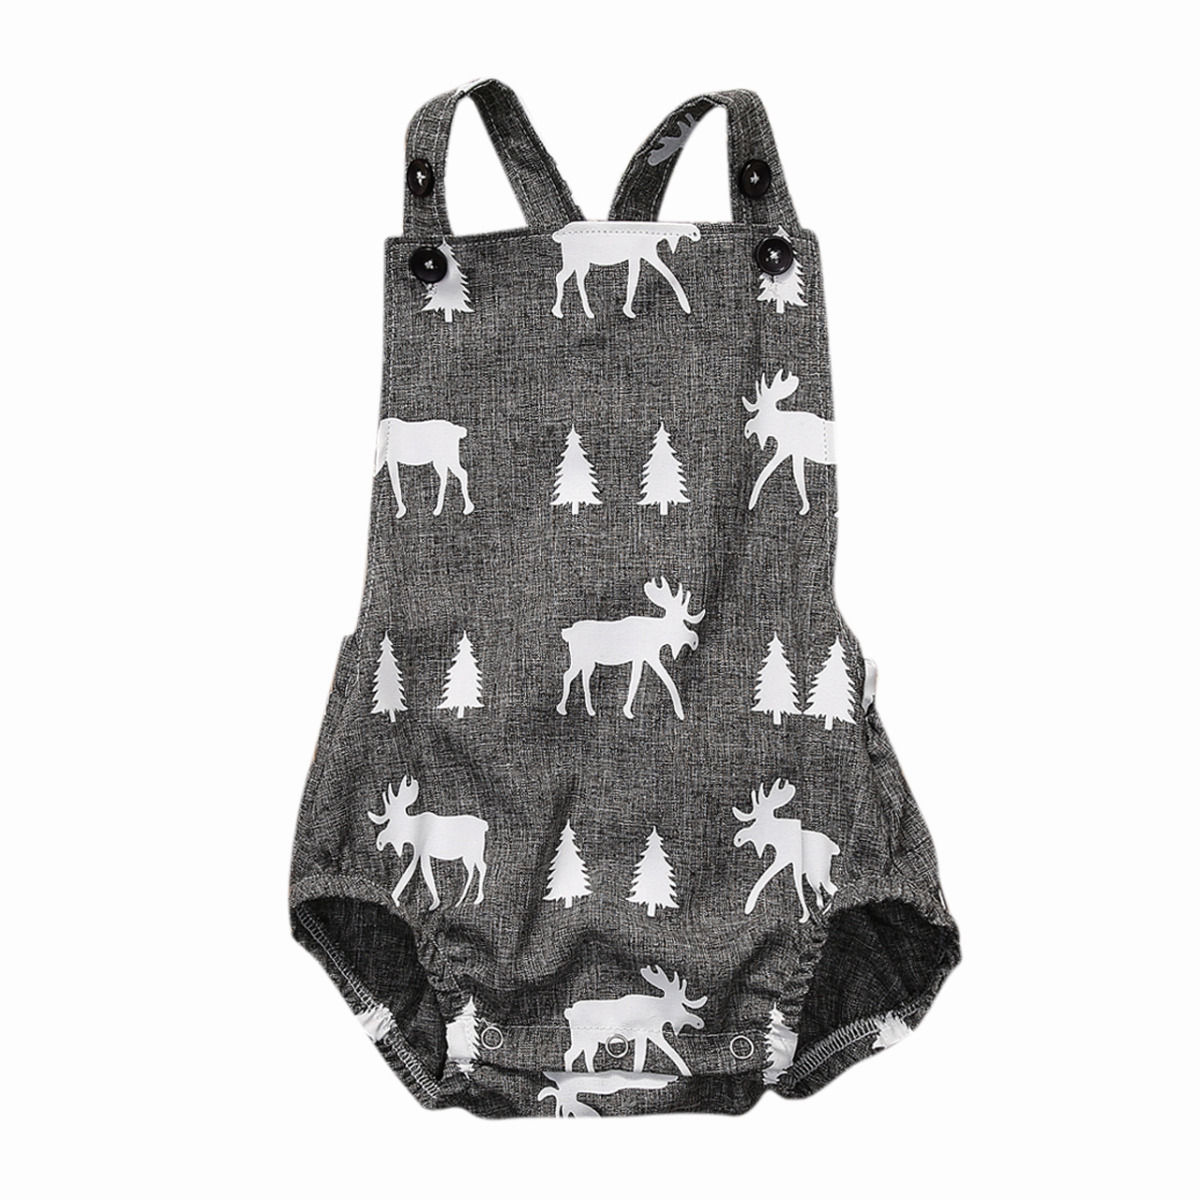 Cute Baby Romper Newborn Baby Boy Girl Fawn Clothes Sleeveless Deer Playsuit Romper Jumpsuit Outfit Sunsuit 0-2Y newborn baby girl kids sleeveless tassel romper jumpsuit summer baby clothes cotton baby girl romper sunsuit outfits